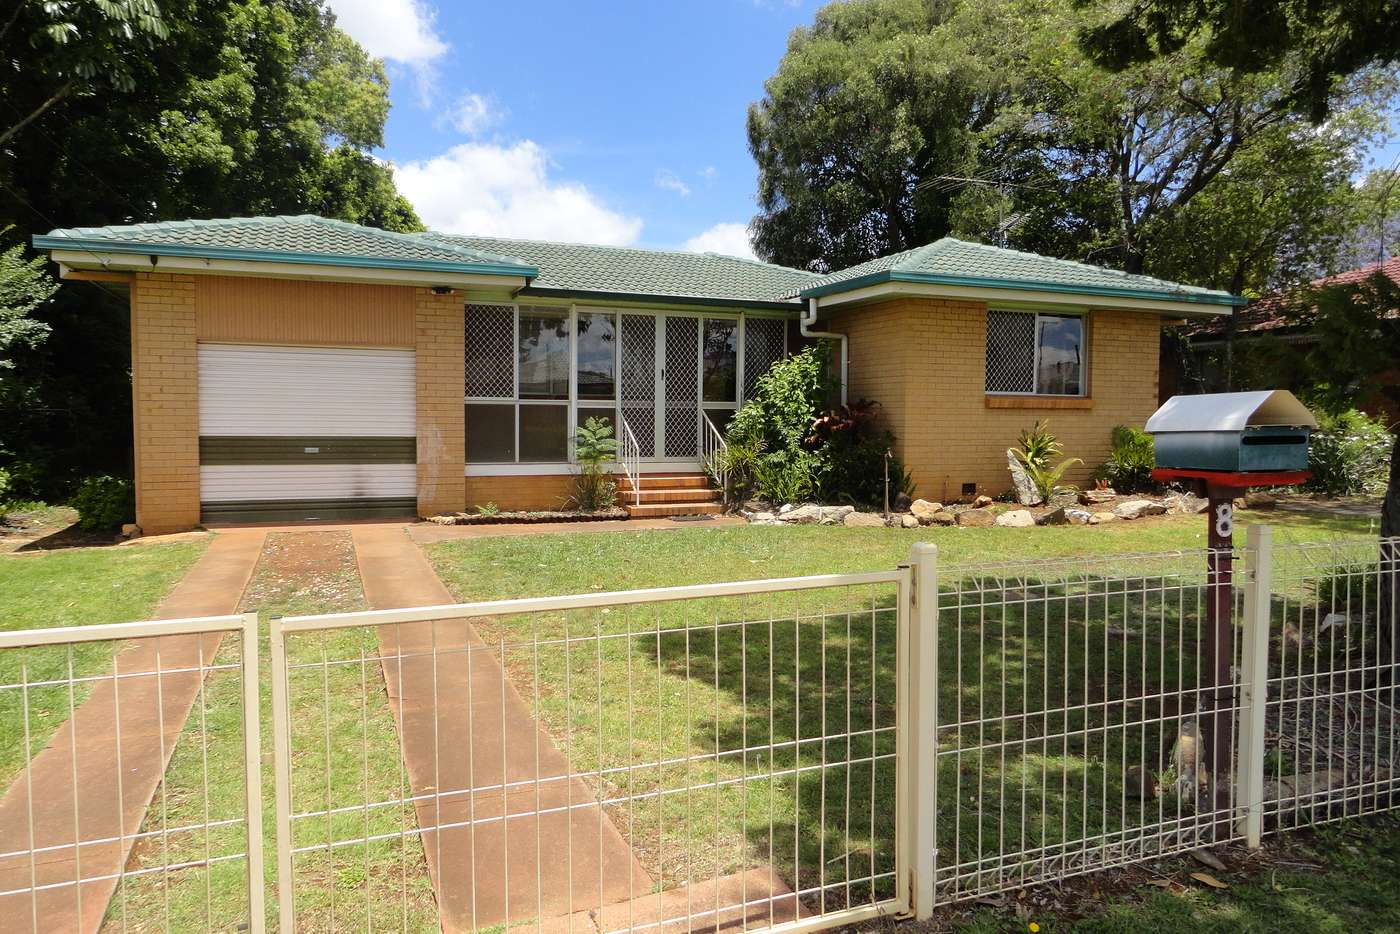 Main view of Homely house listing, 8 Skoien Street, Harristown QLD 4350